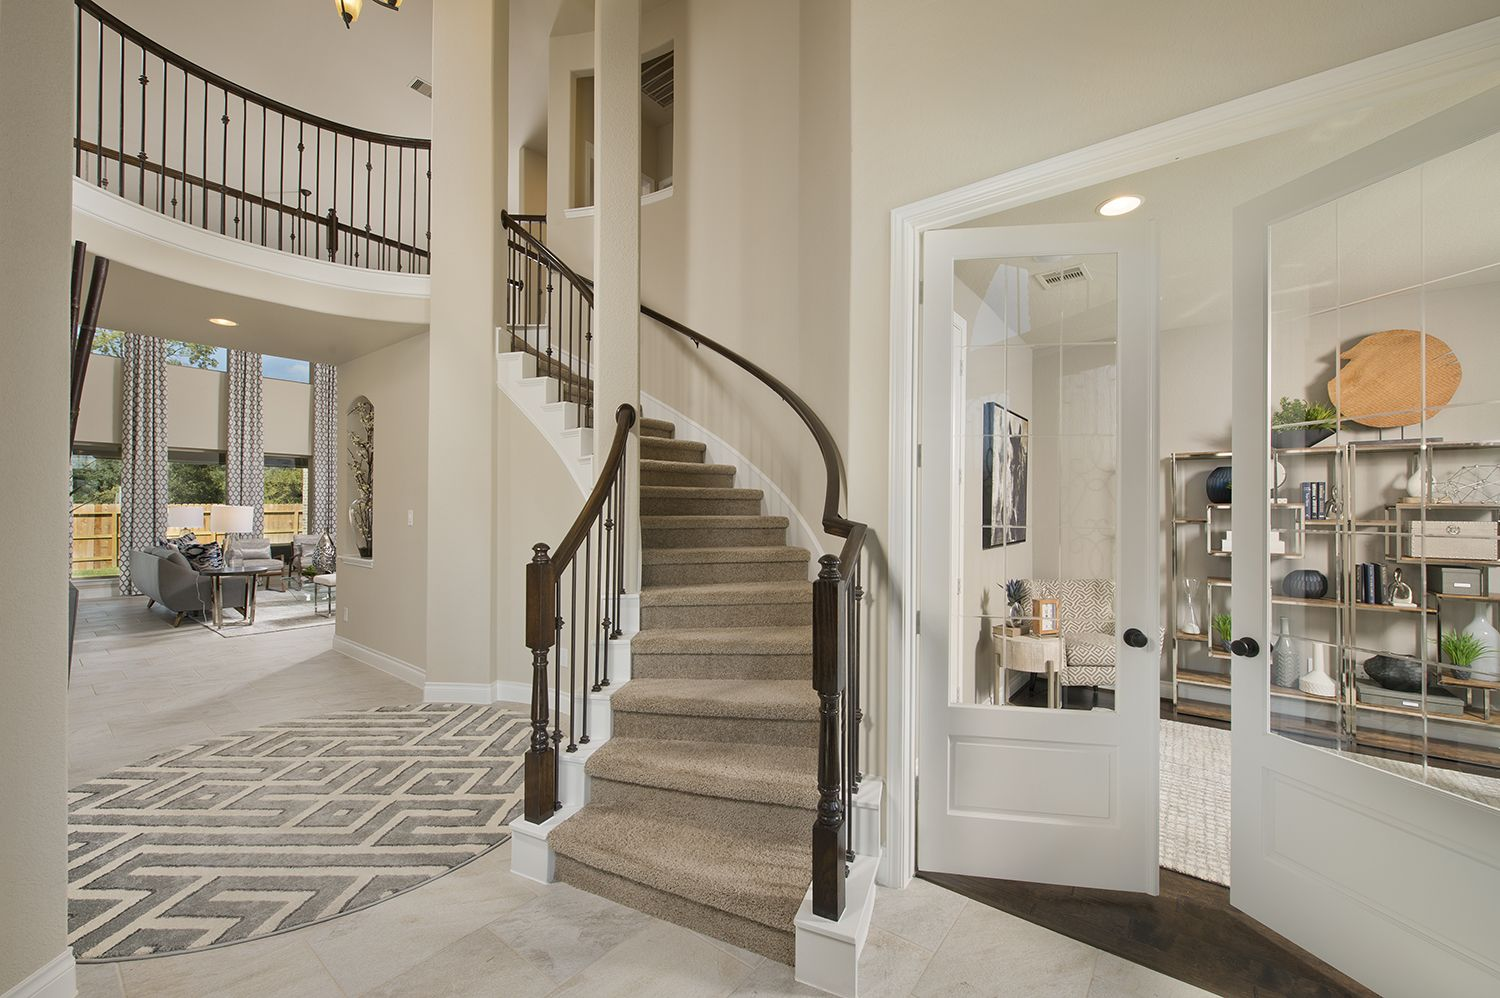 Model Home Foyer Pictures : Riverstone model home open daily 3 593 sq. ft. foyer & french